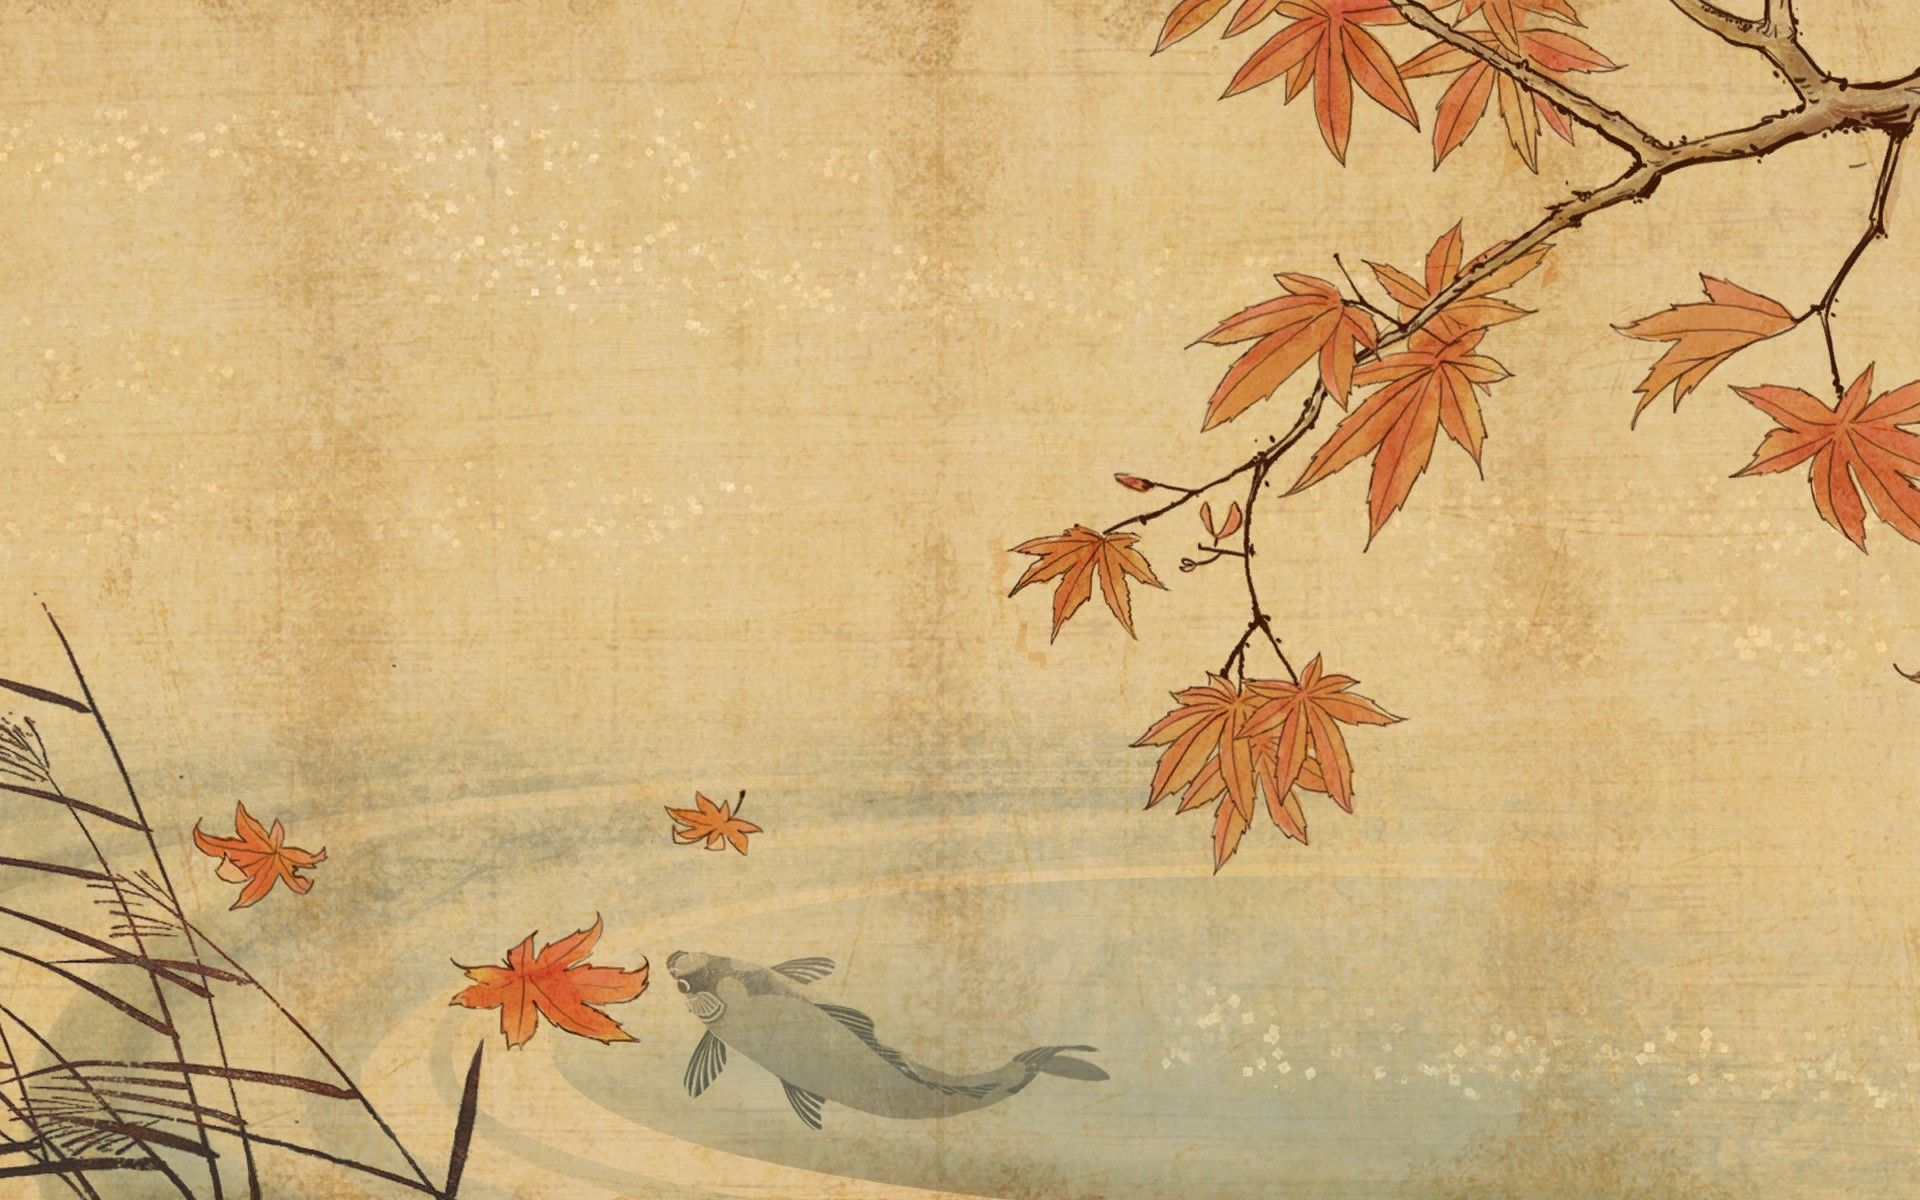 Japanese Scroll Wallpapers - Top Free Japanese Scroll